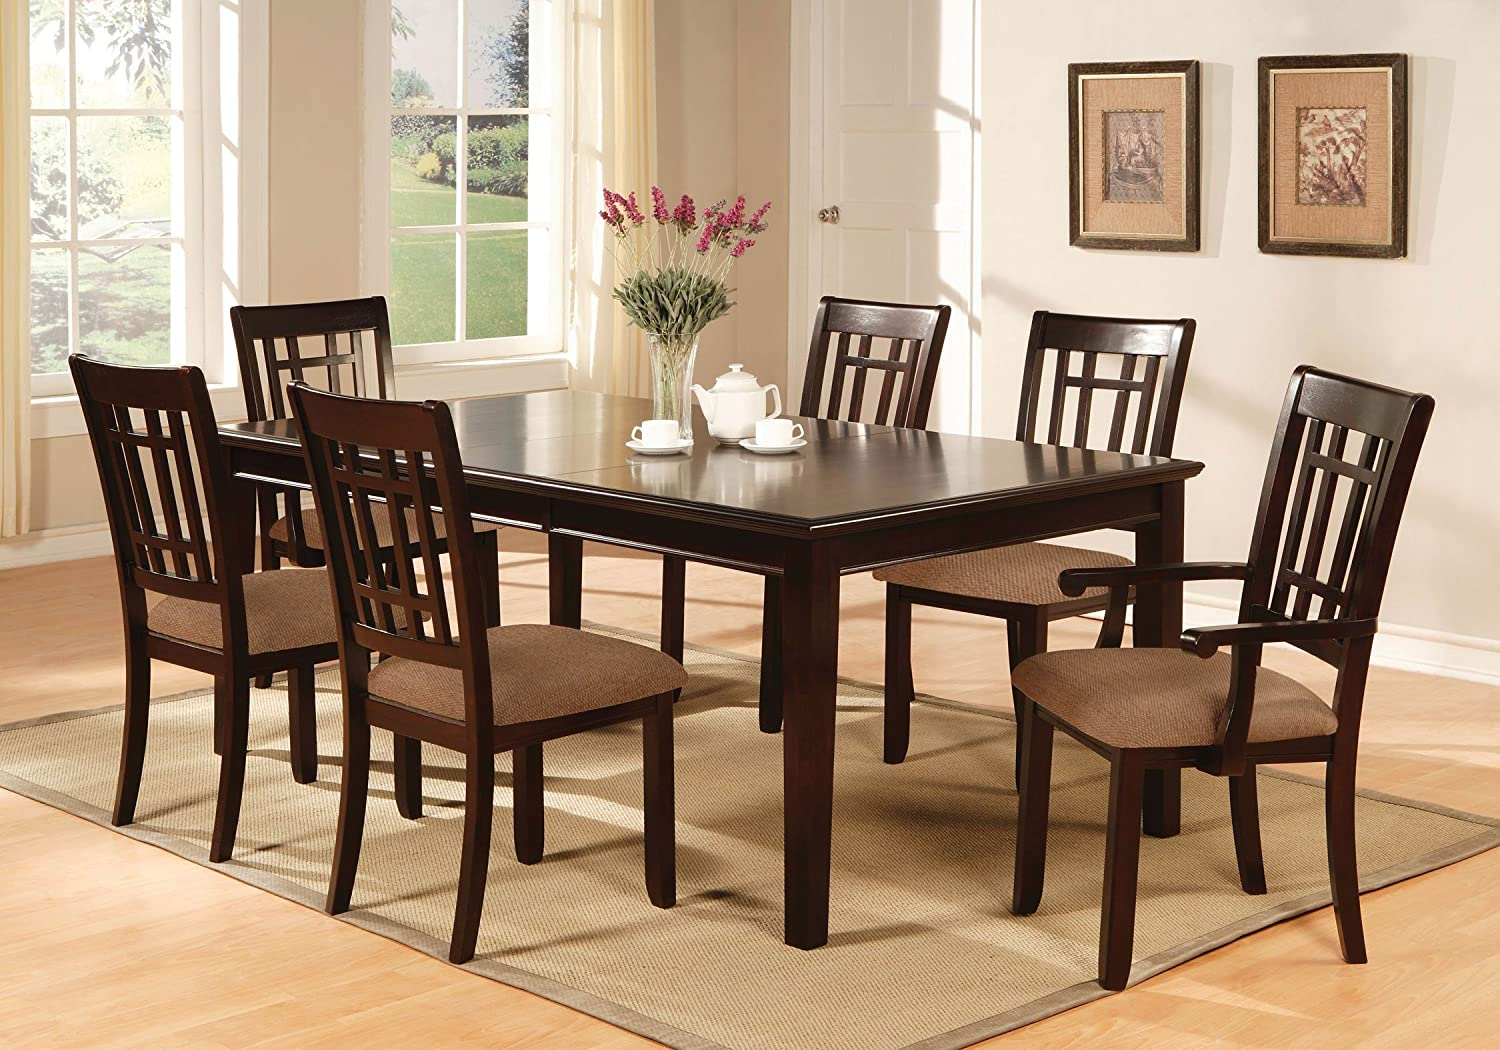 Round Wood Kitchen Table Sets Amazon furniture of america madison 7 piece dining table set amazon furniture of america madison 7 piece dining table set with 18 inch leaf dark cherry finish table chair sets workwithnaturefo